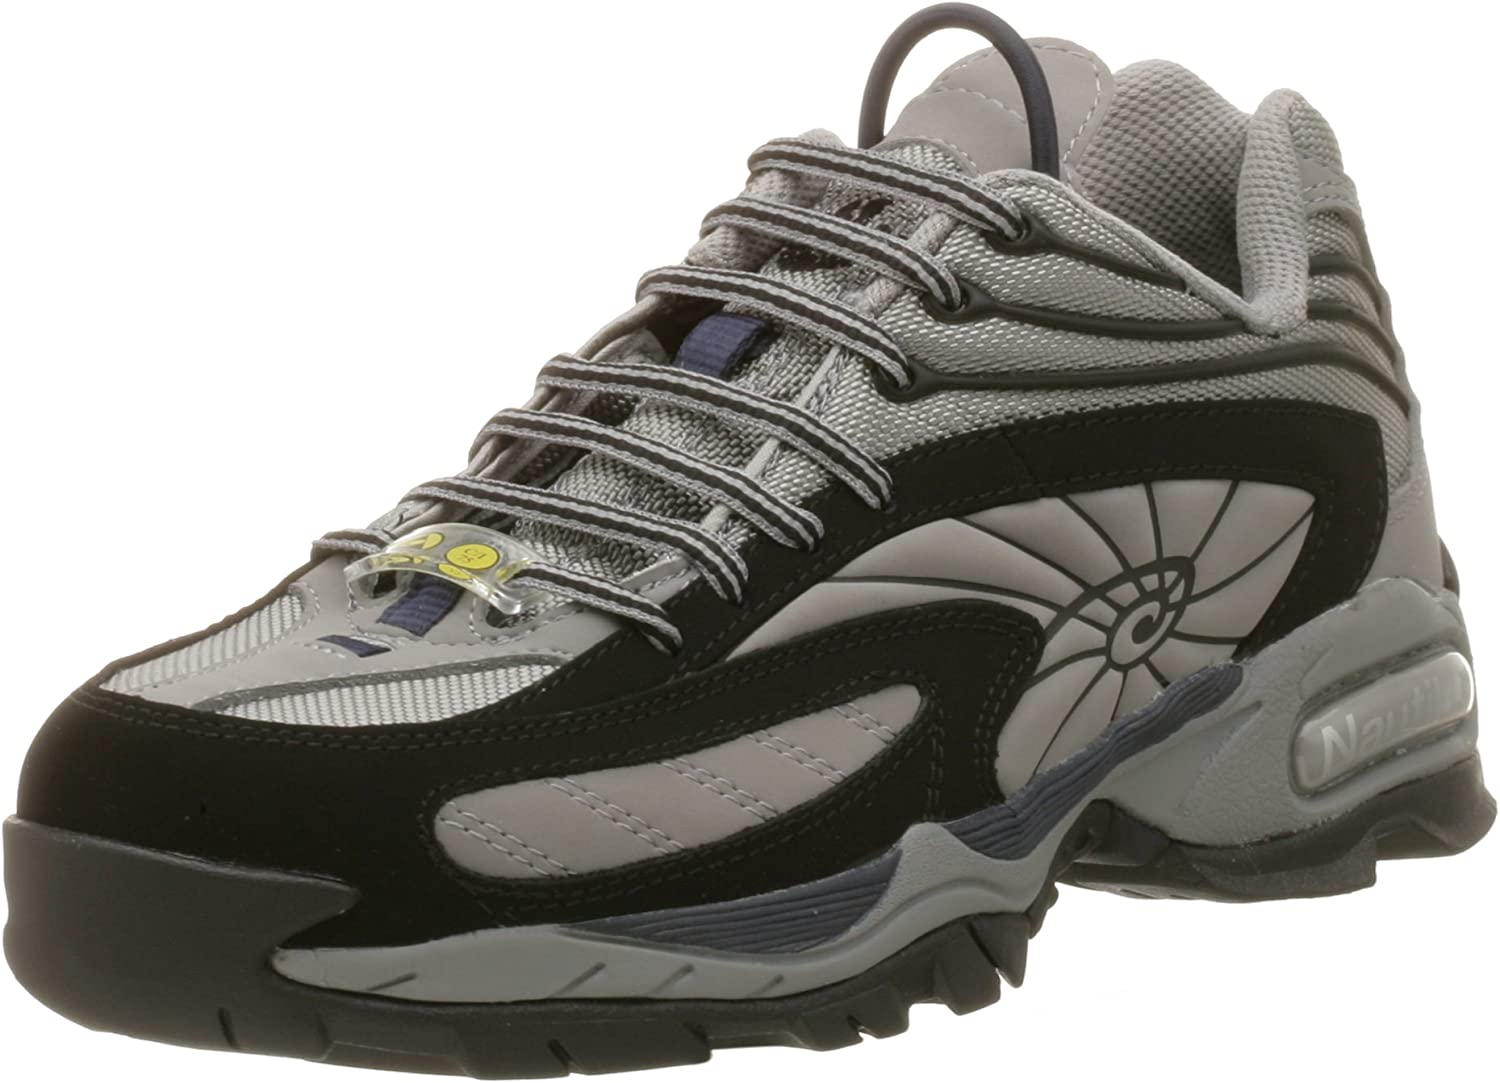 Nautilus Safety Footwear N1320 Men's ESD Safety Toe Athletic Work Shoes, 10.5 W